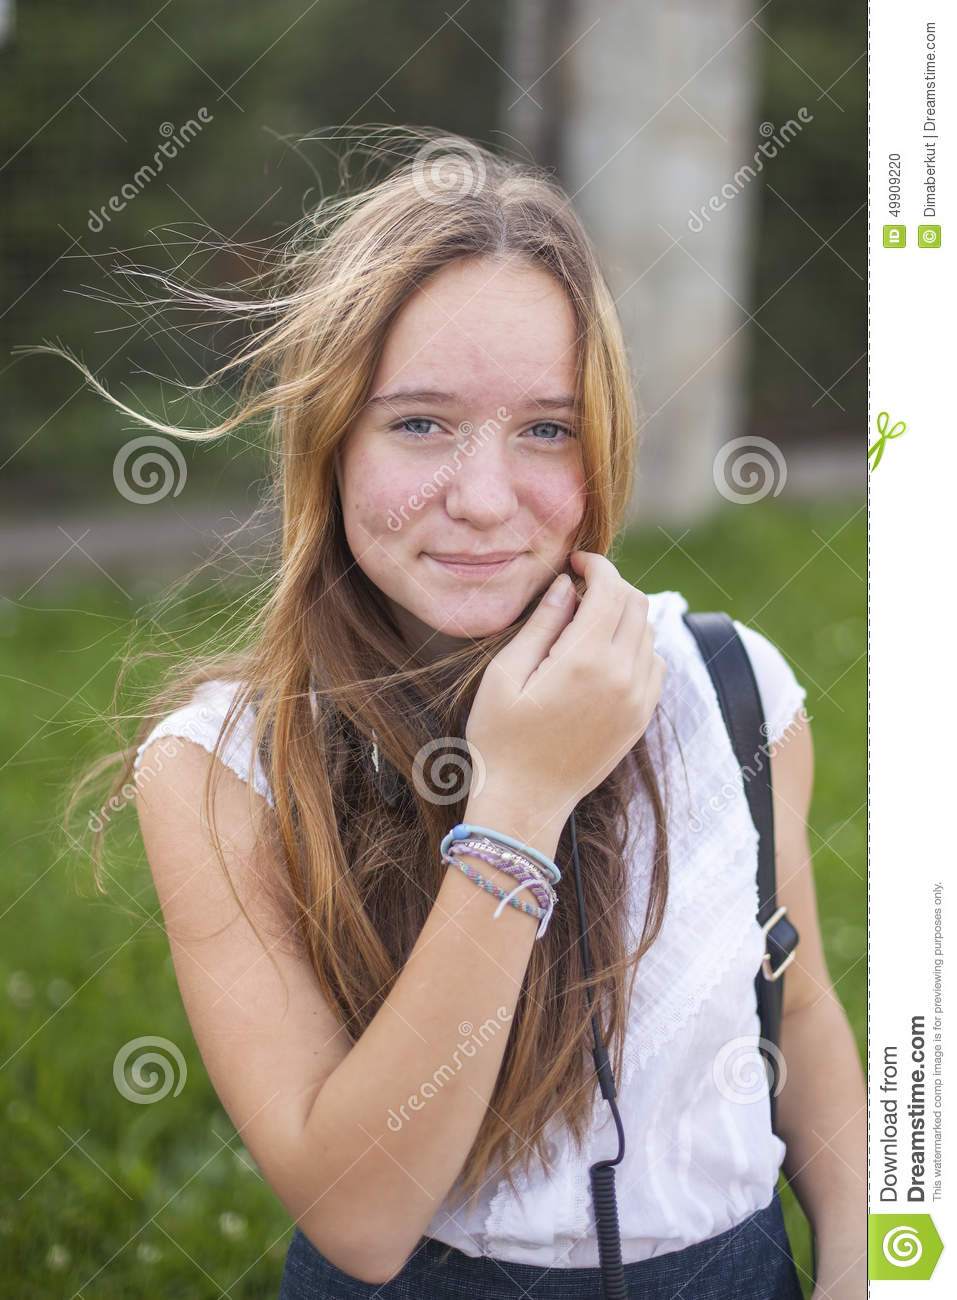 Young Cute Teen Girl Portrait Outdoors. Nature. Stock